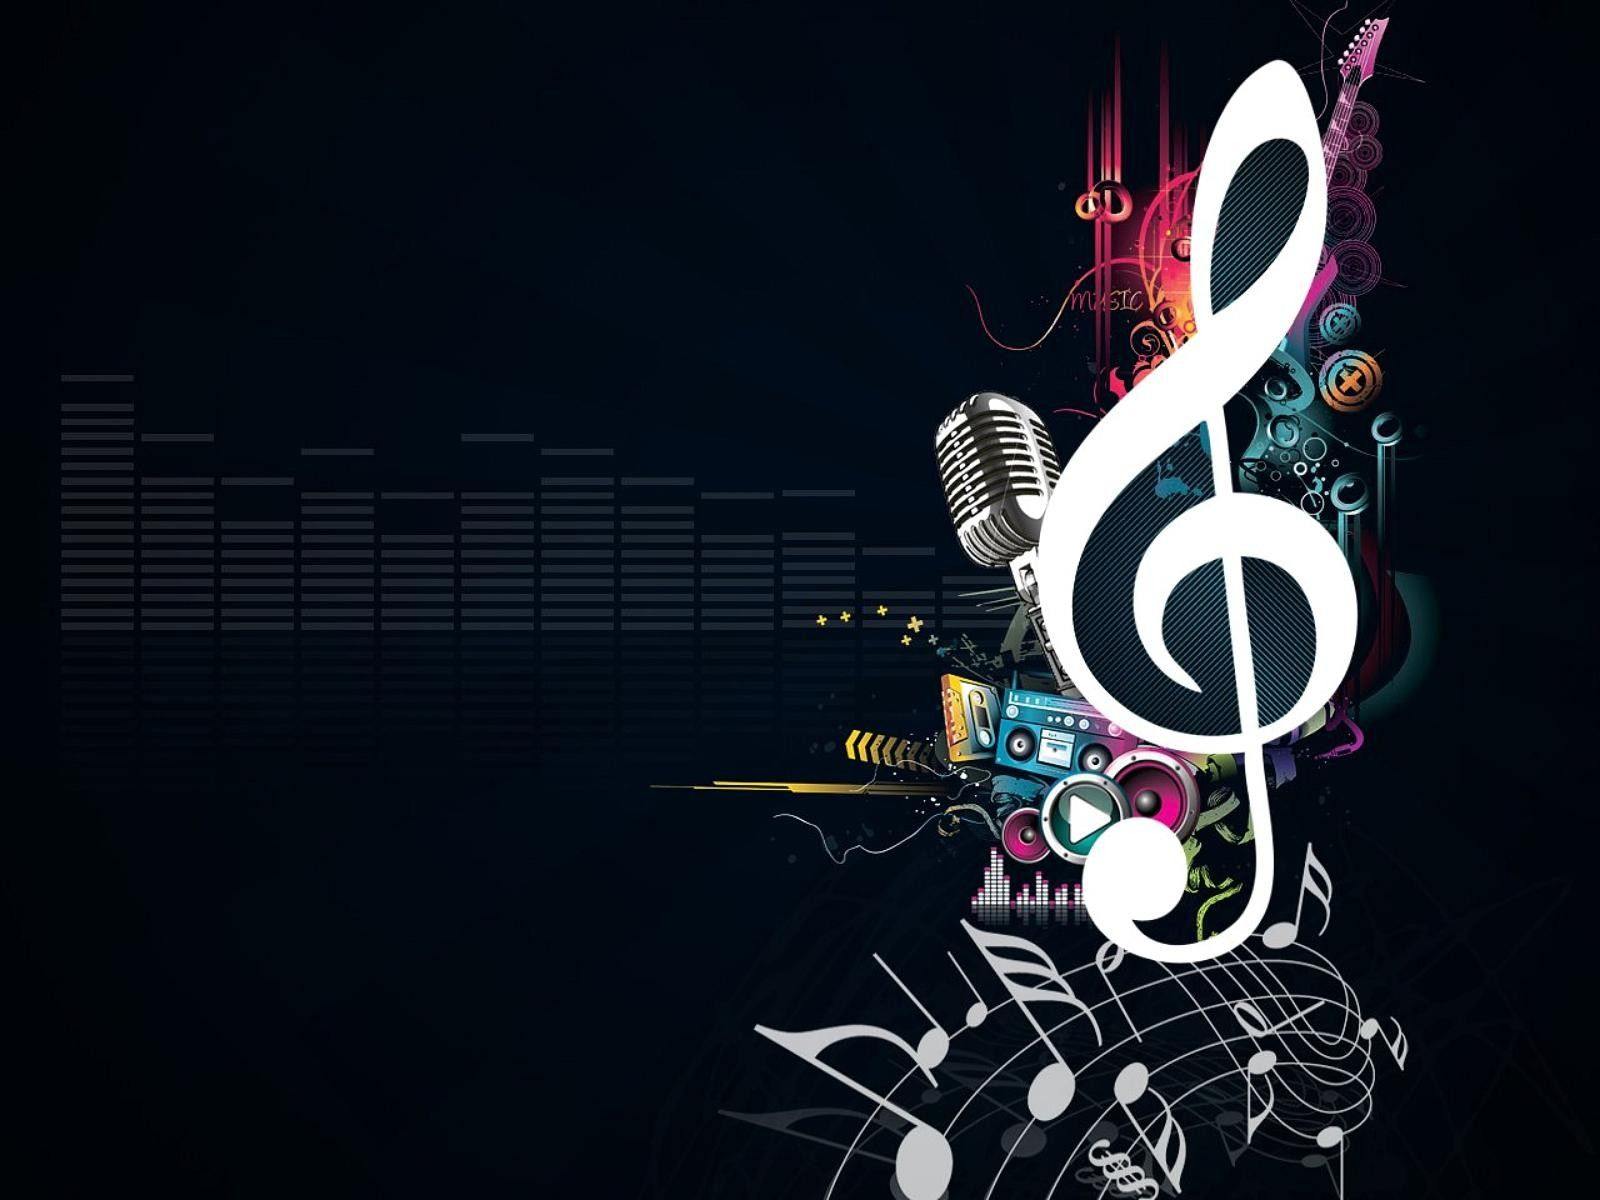 Download Music Wallpaper Hd Backgrounds Download Itl Cat